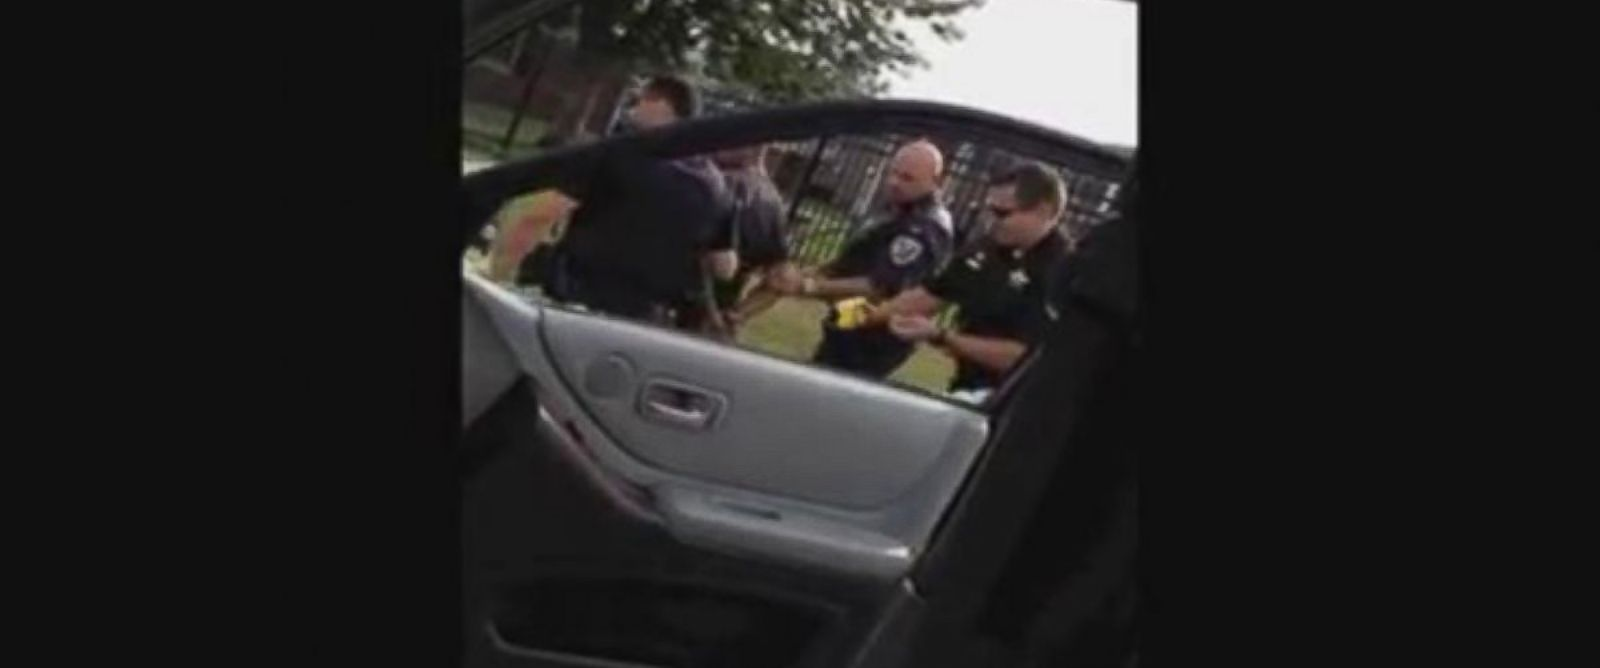 PHOTO: A family is suing the Hammond police in Indiana, alleging excessive force by officers